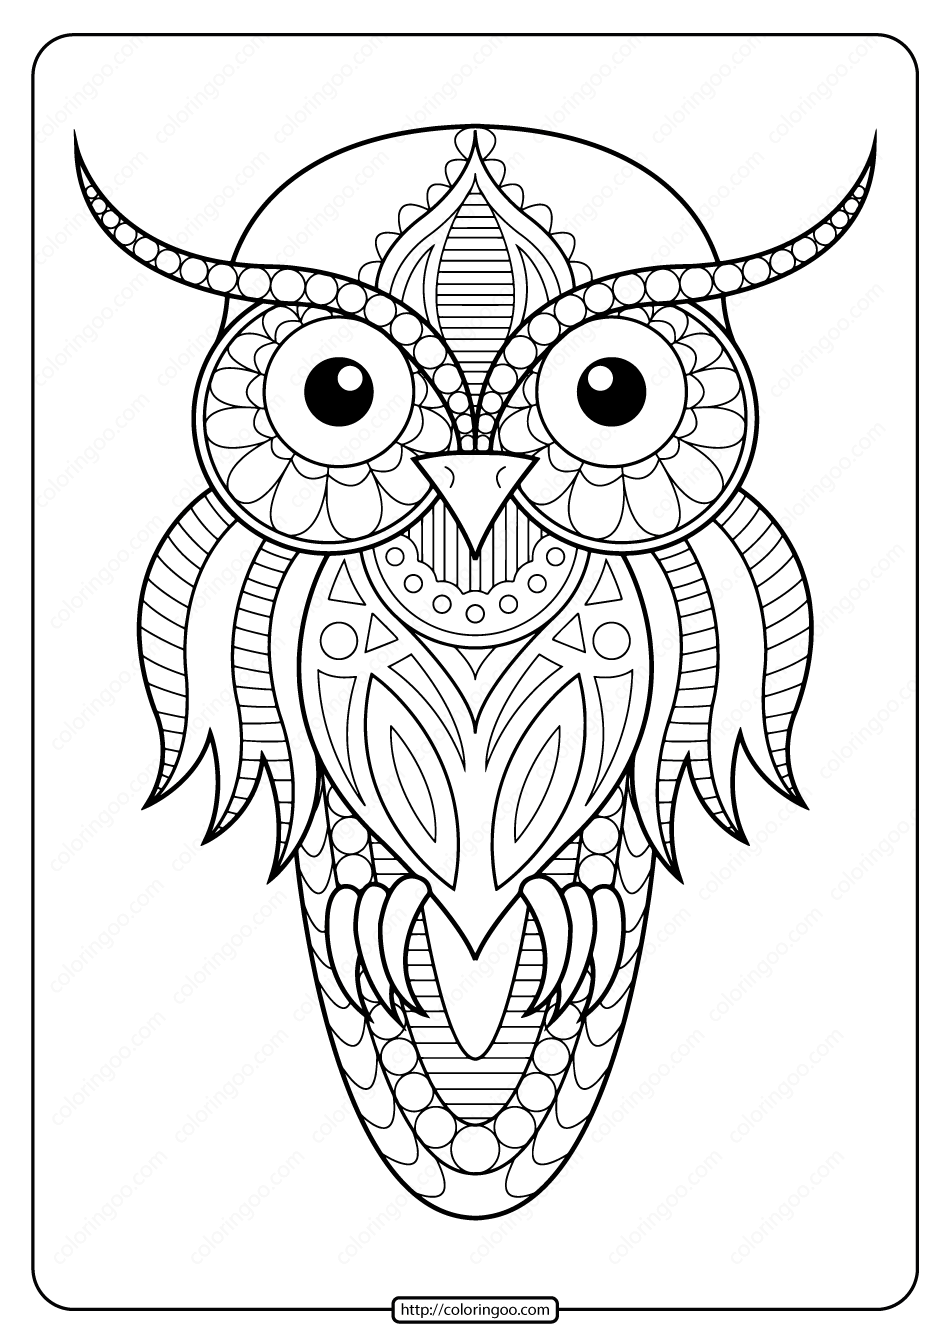 Free Printable Owl Animal Coloring Page